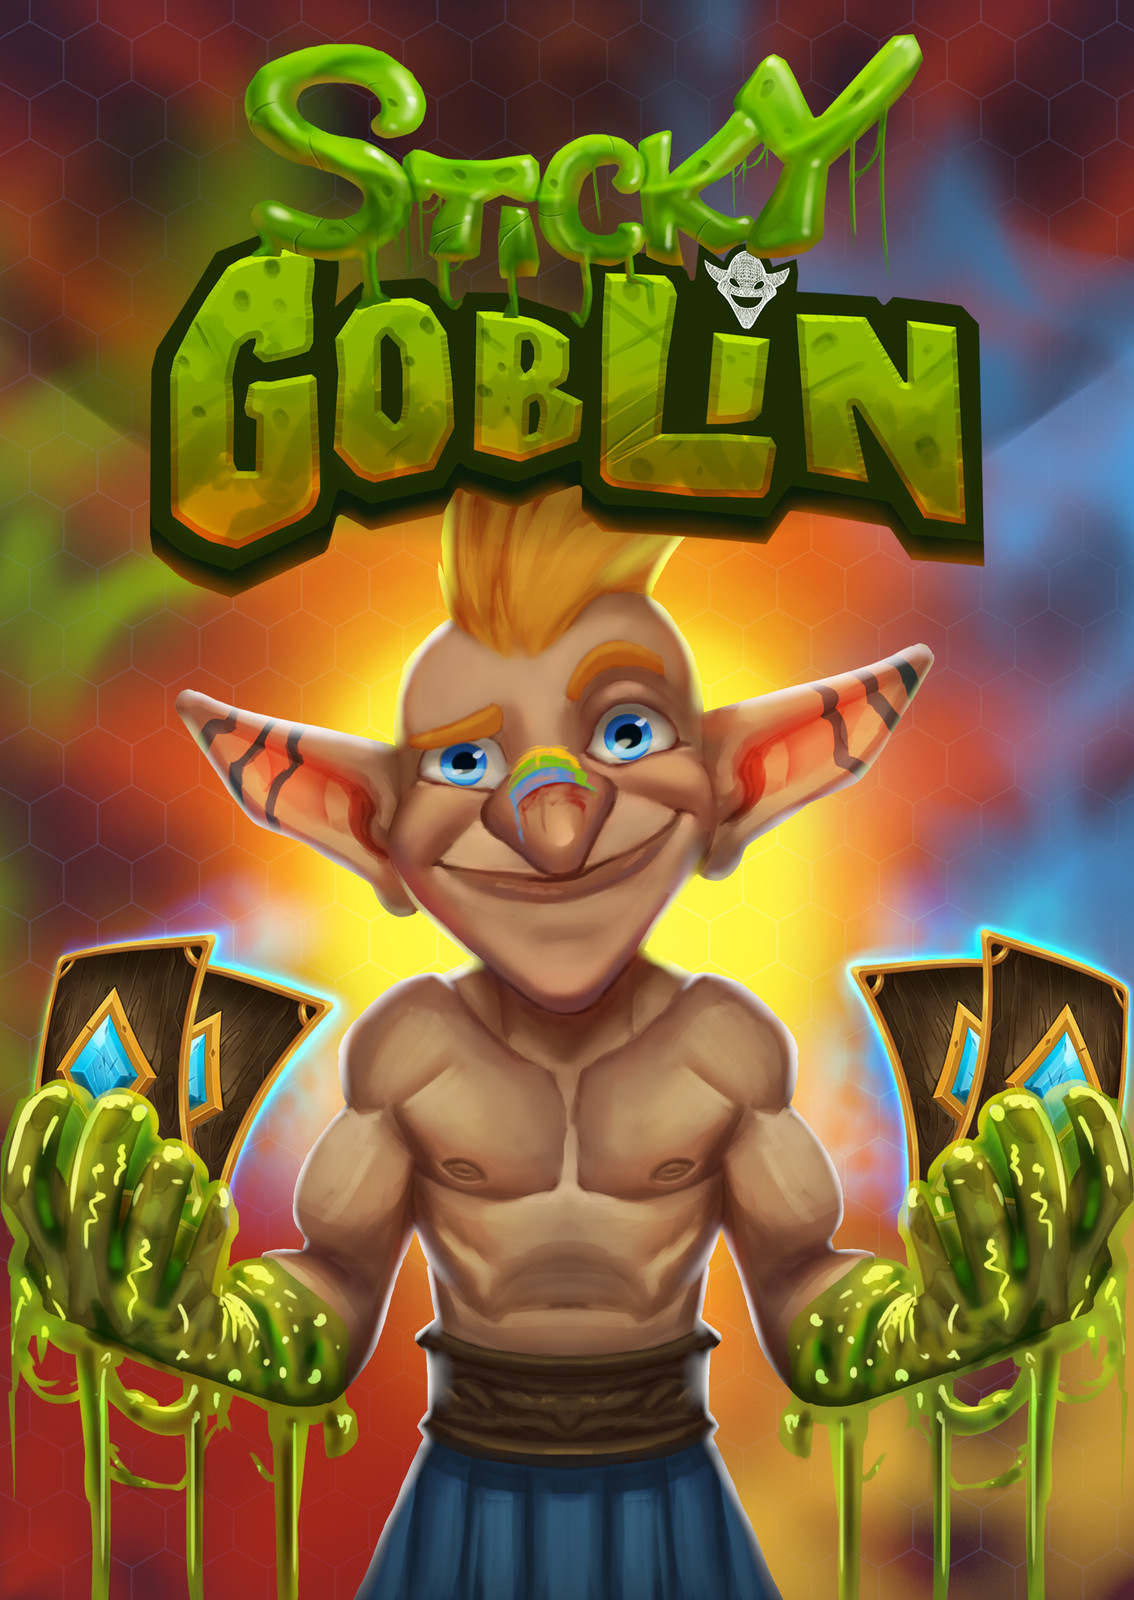 Sticky Goblin logo and art of front of box